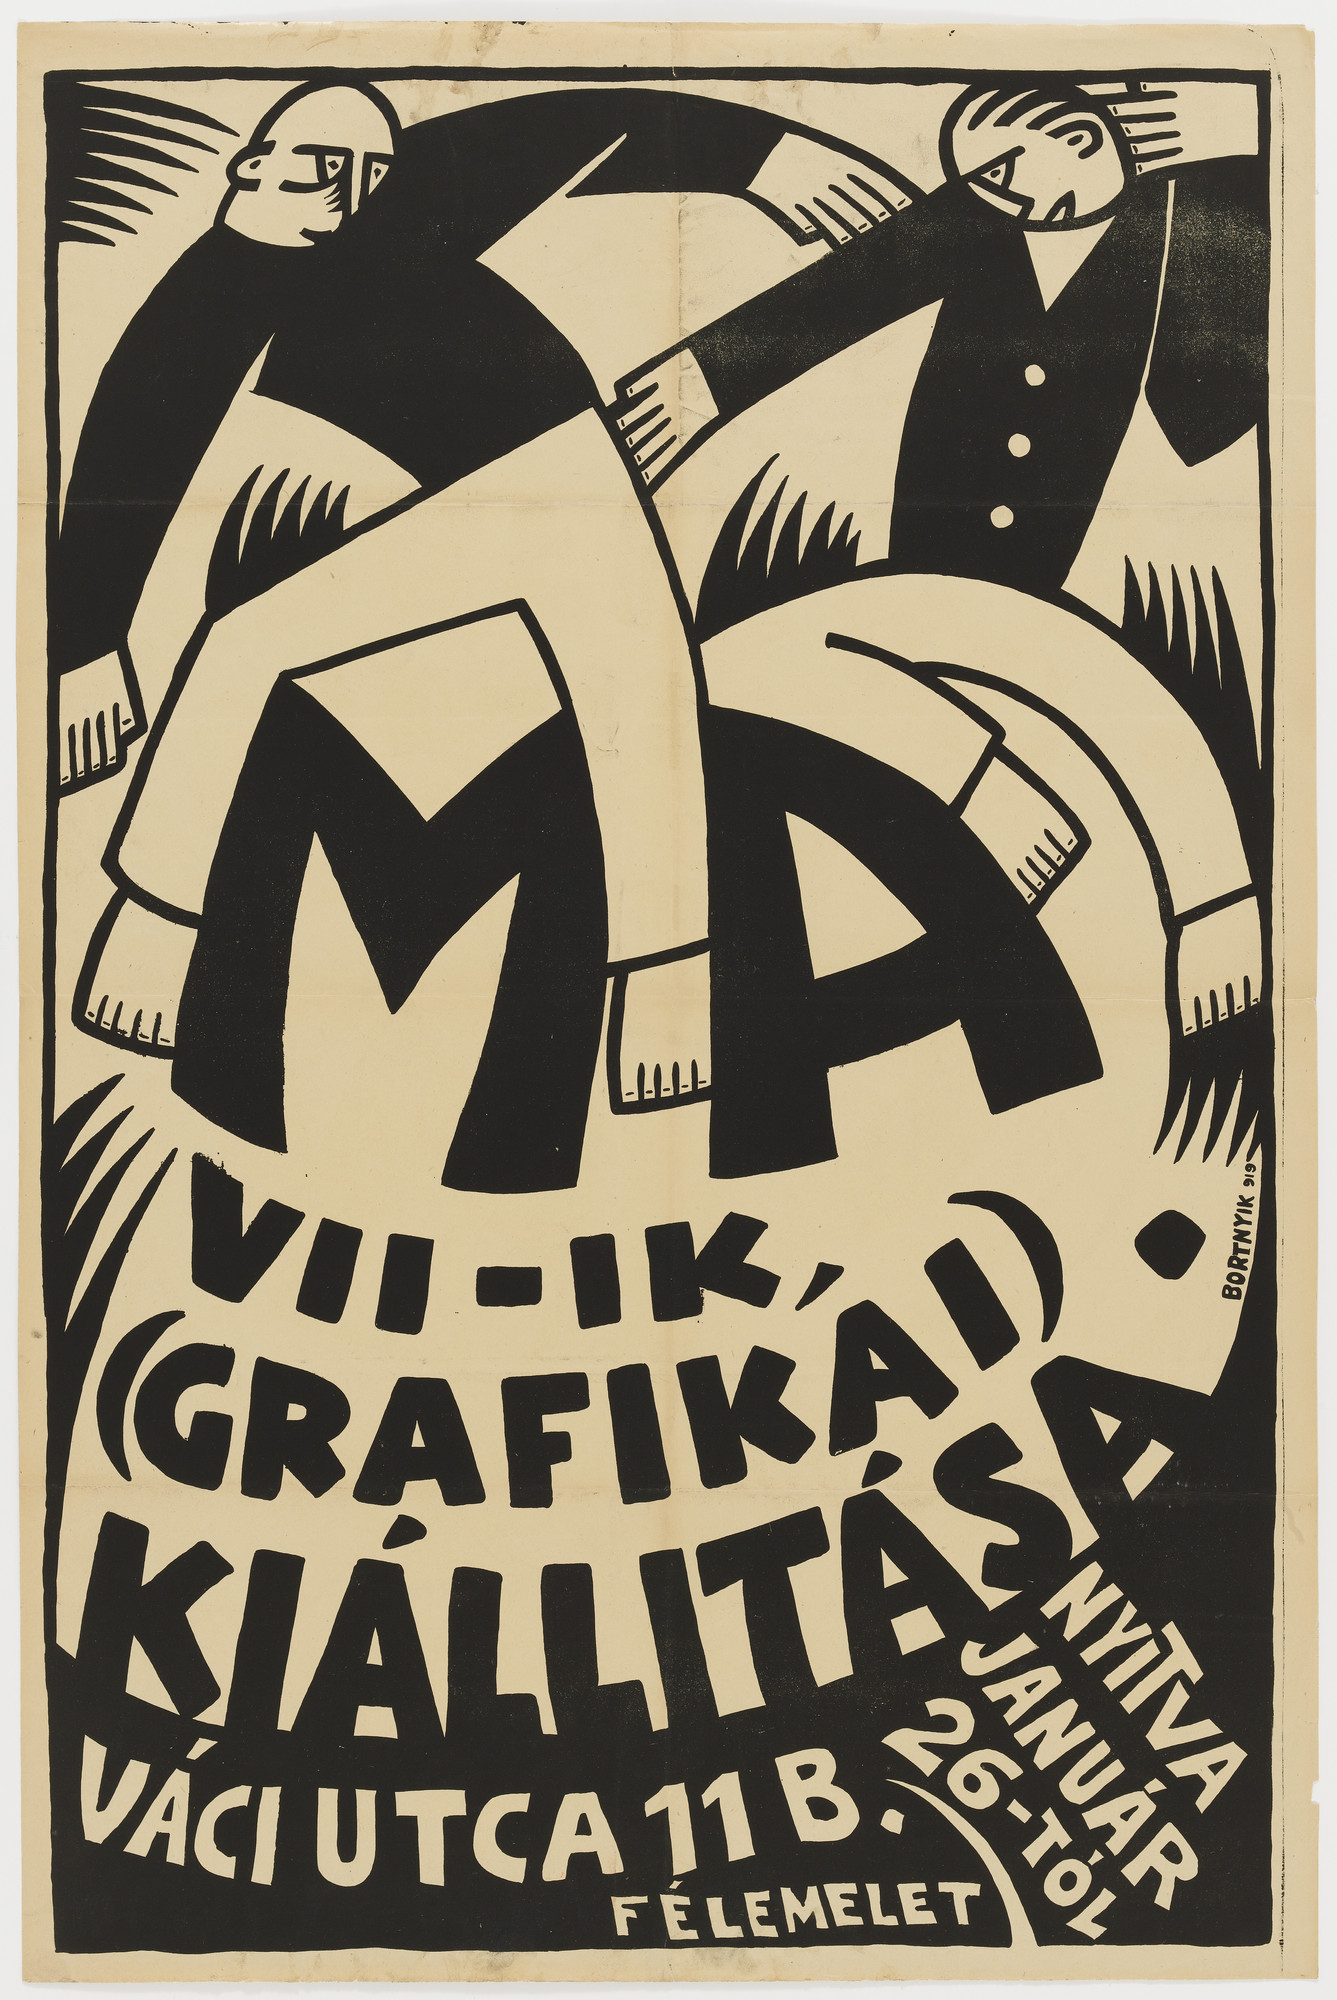 Sándor (Alexander) Bortnyik. MA VII - IK (Grafikai) Kiállitása (Poster for the 7th graphics exhibition of the Ma group, Budapest). 1919